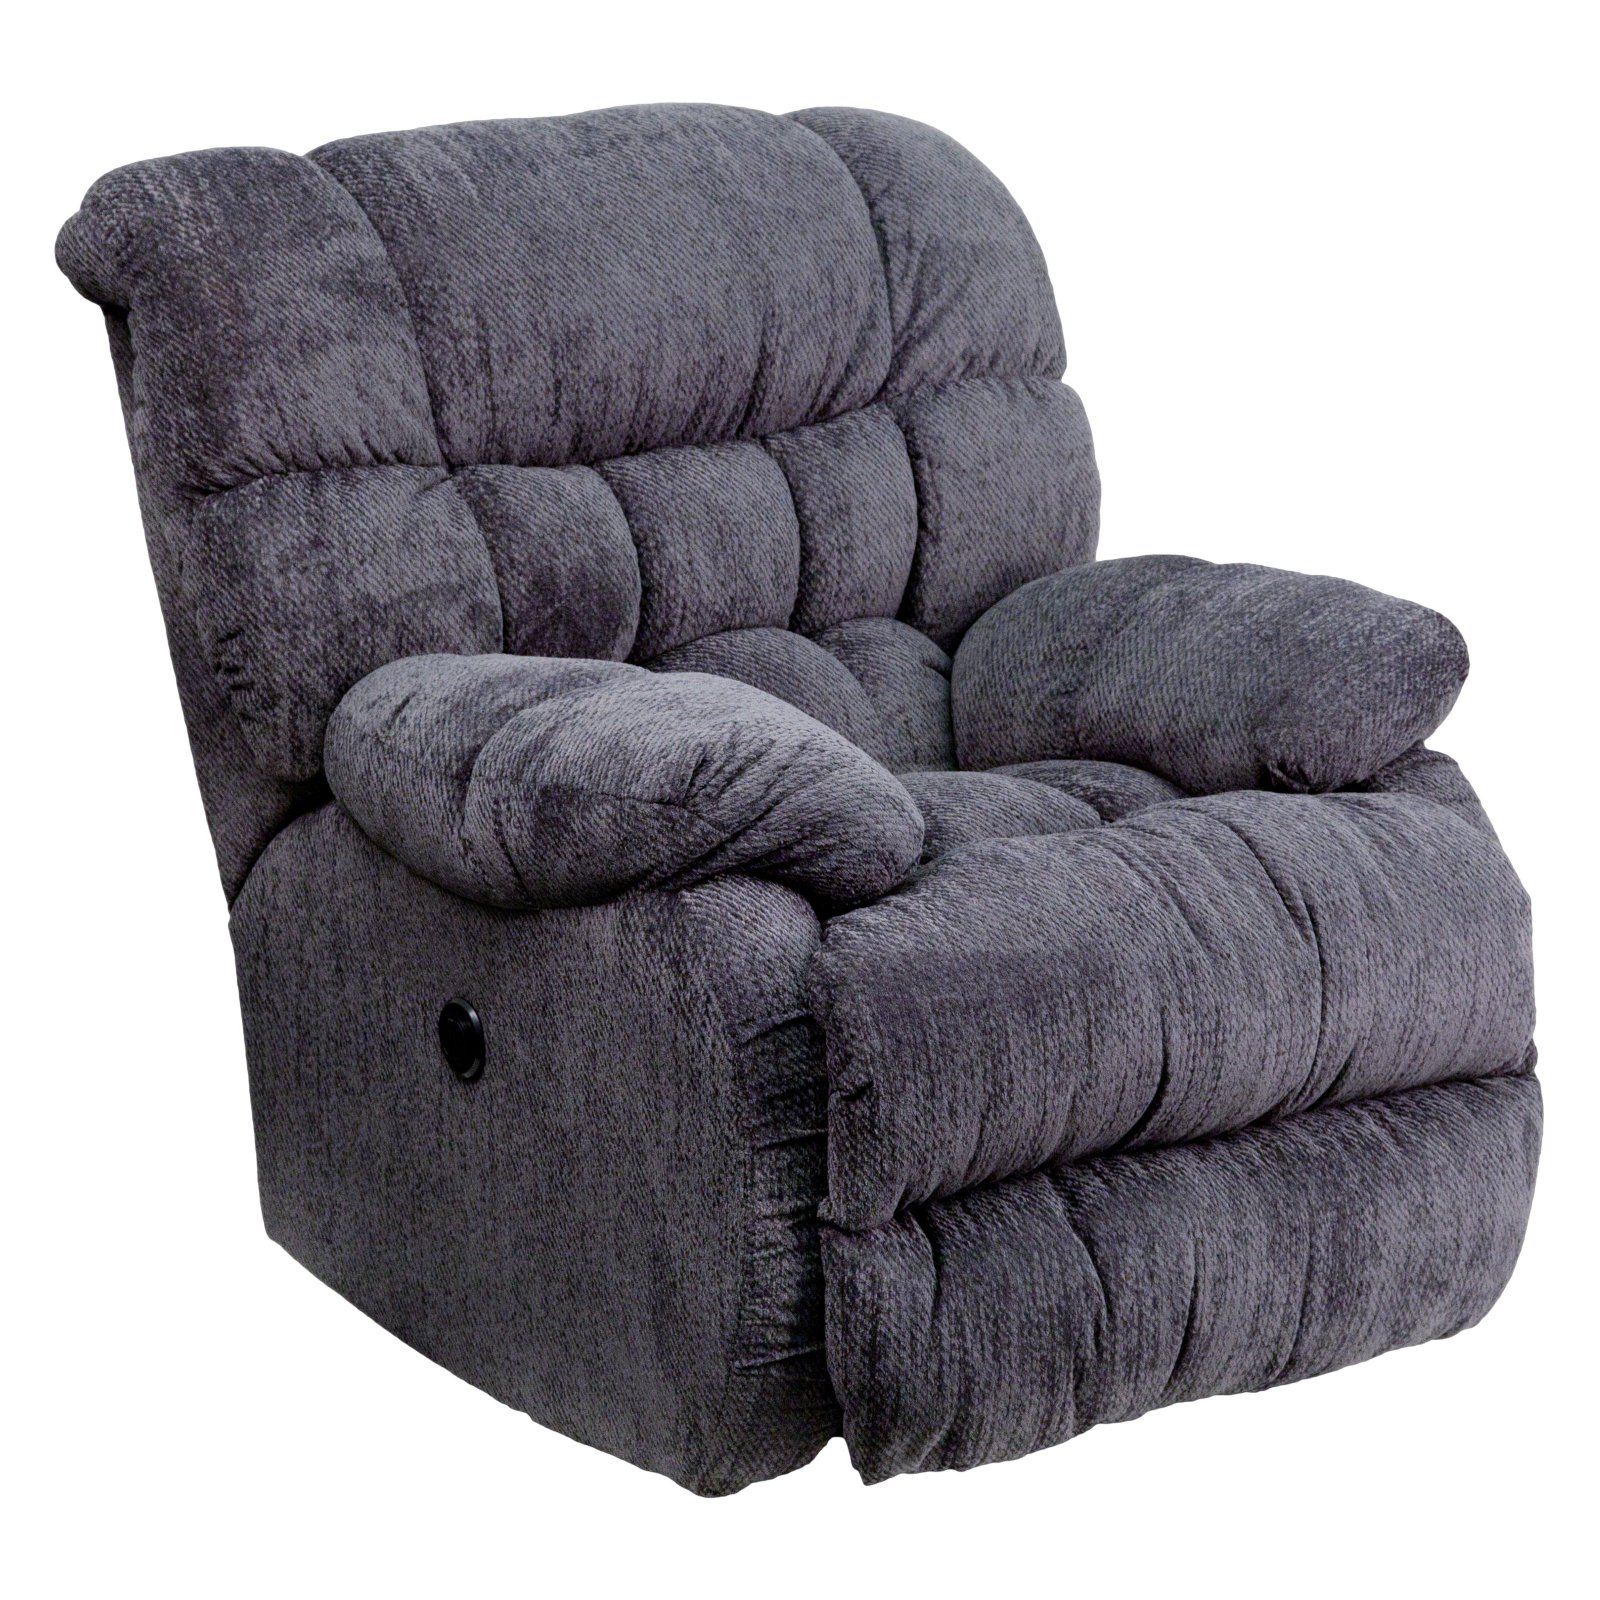 Flash Furniture Contemporary Columbia Microfiber Power Recliner with Push Button, Multiple Colors